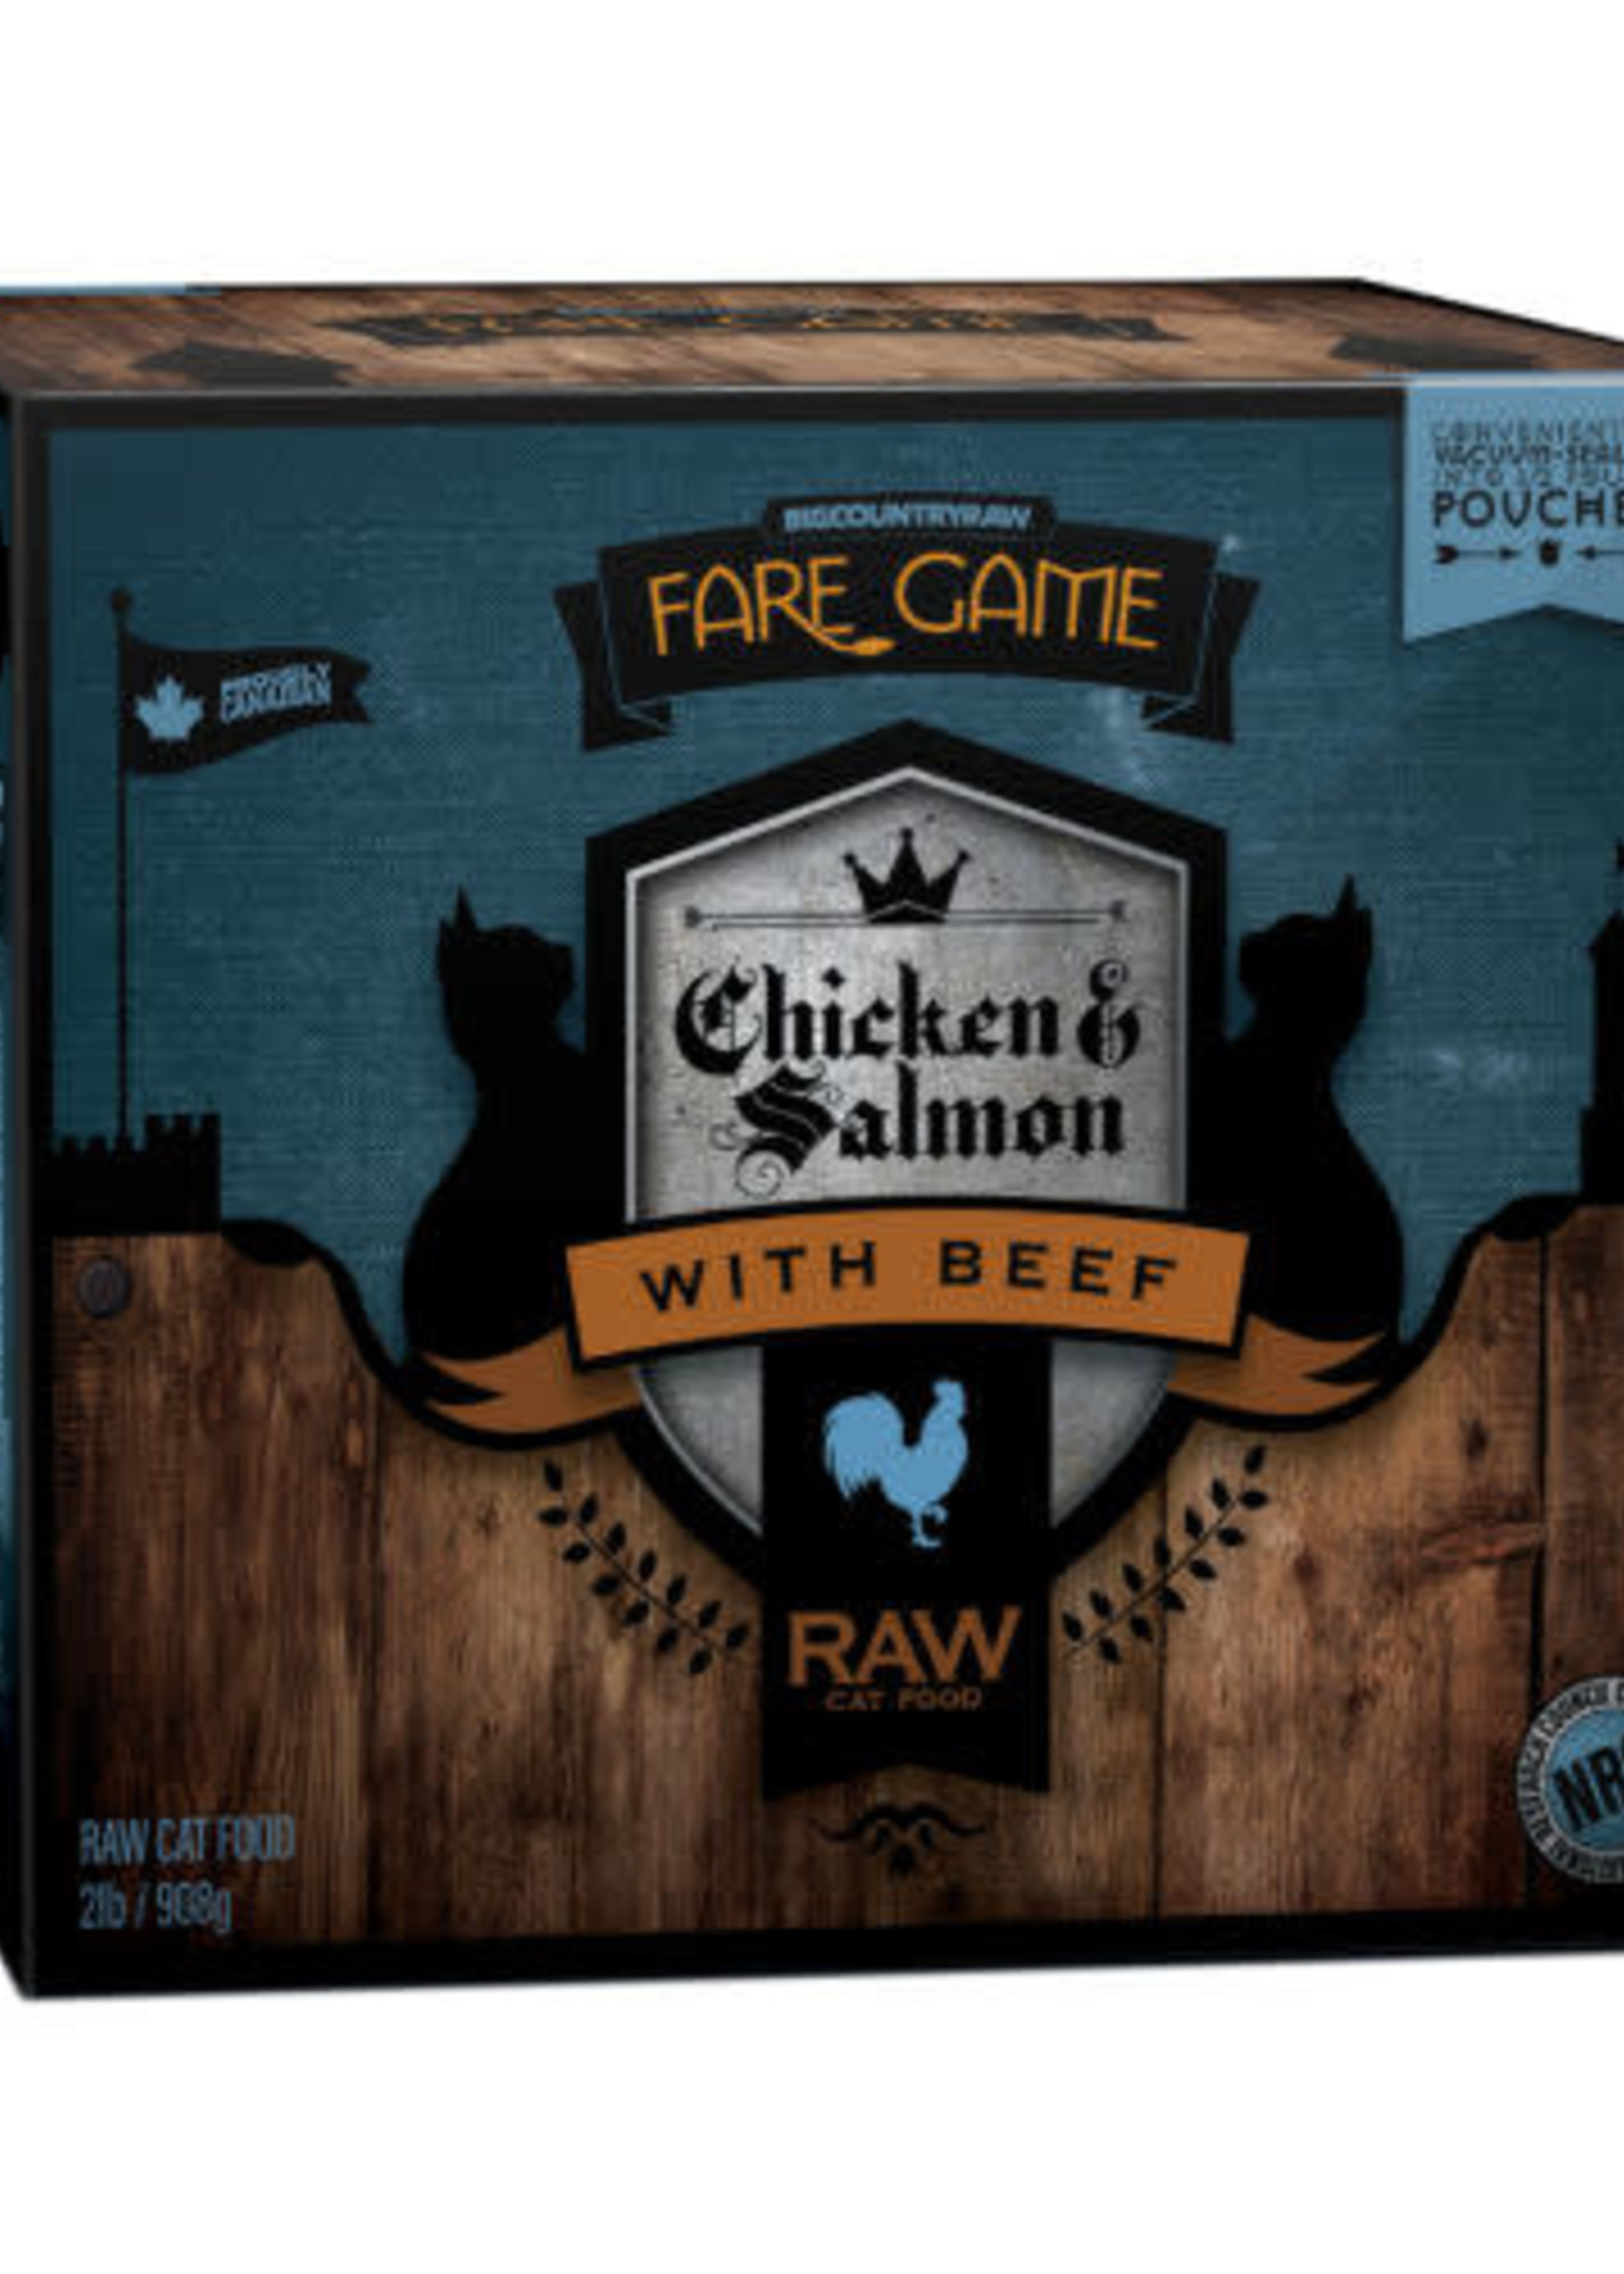 Fare Game Fare Game Chicken and Salmon with Beef 2lbs